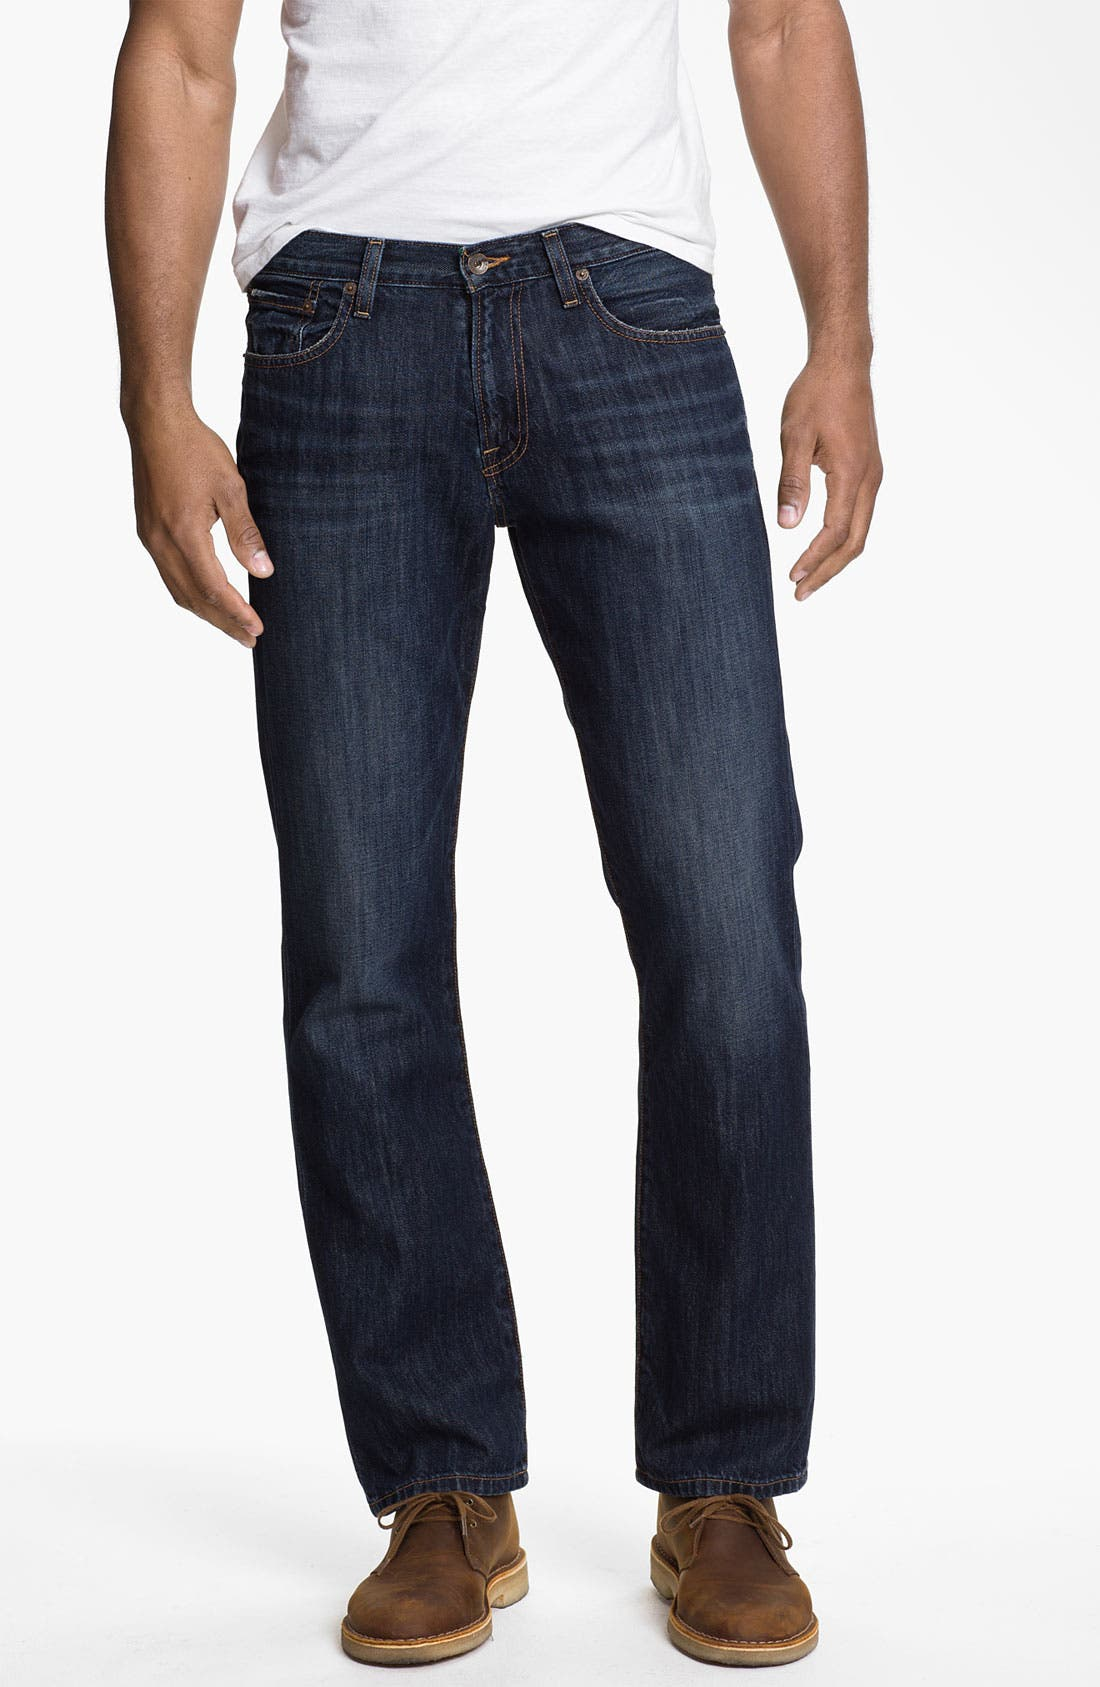 Alternate Image 1 Selected - Lucky Brand '221 Original' Straight Leg Jeans (Capistrano)